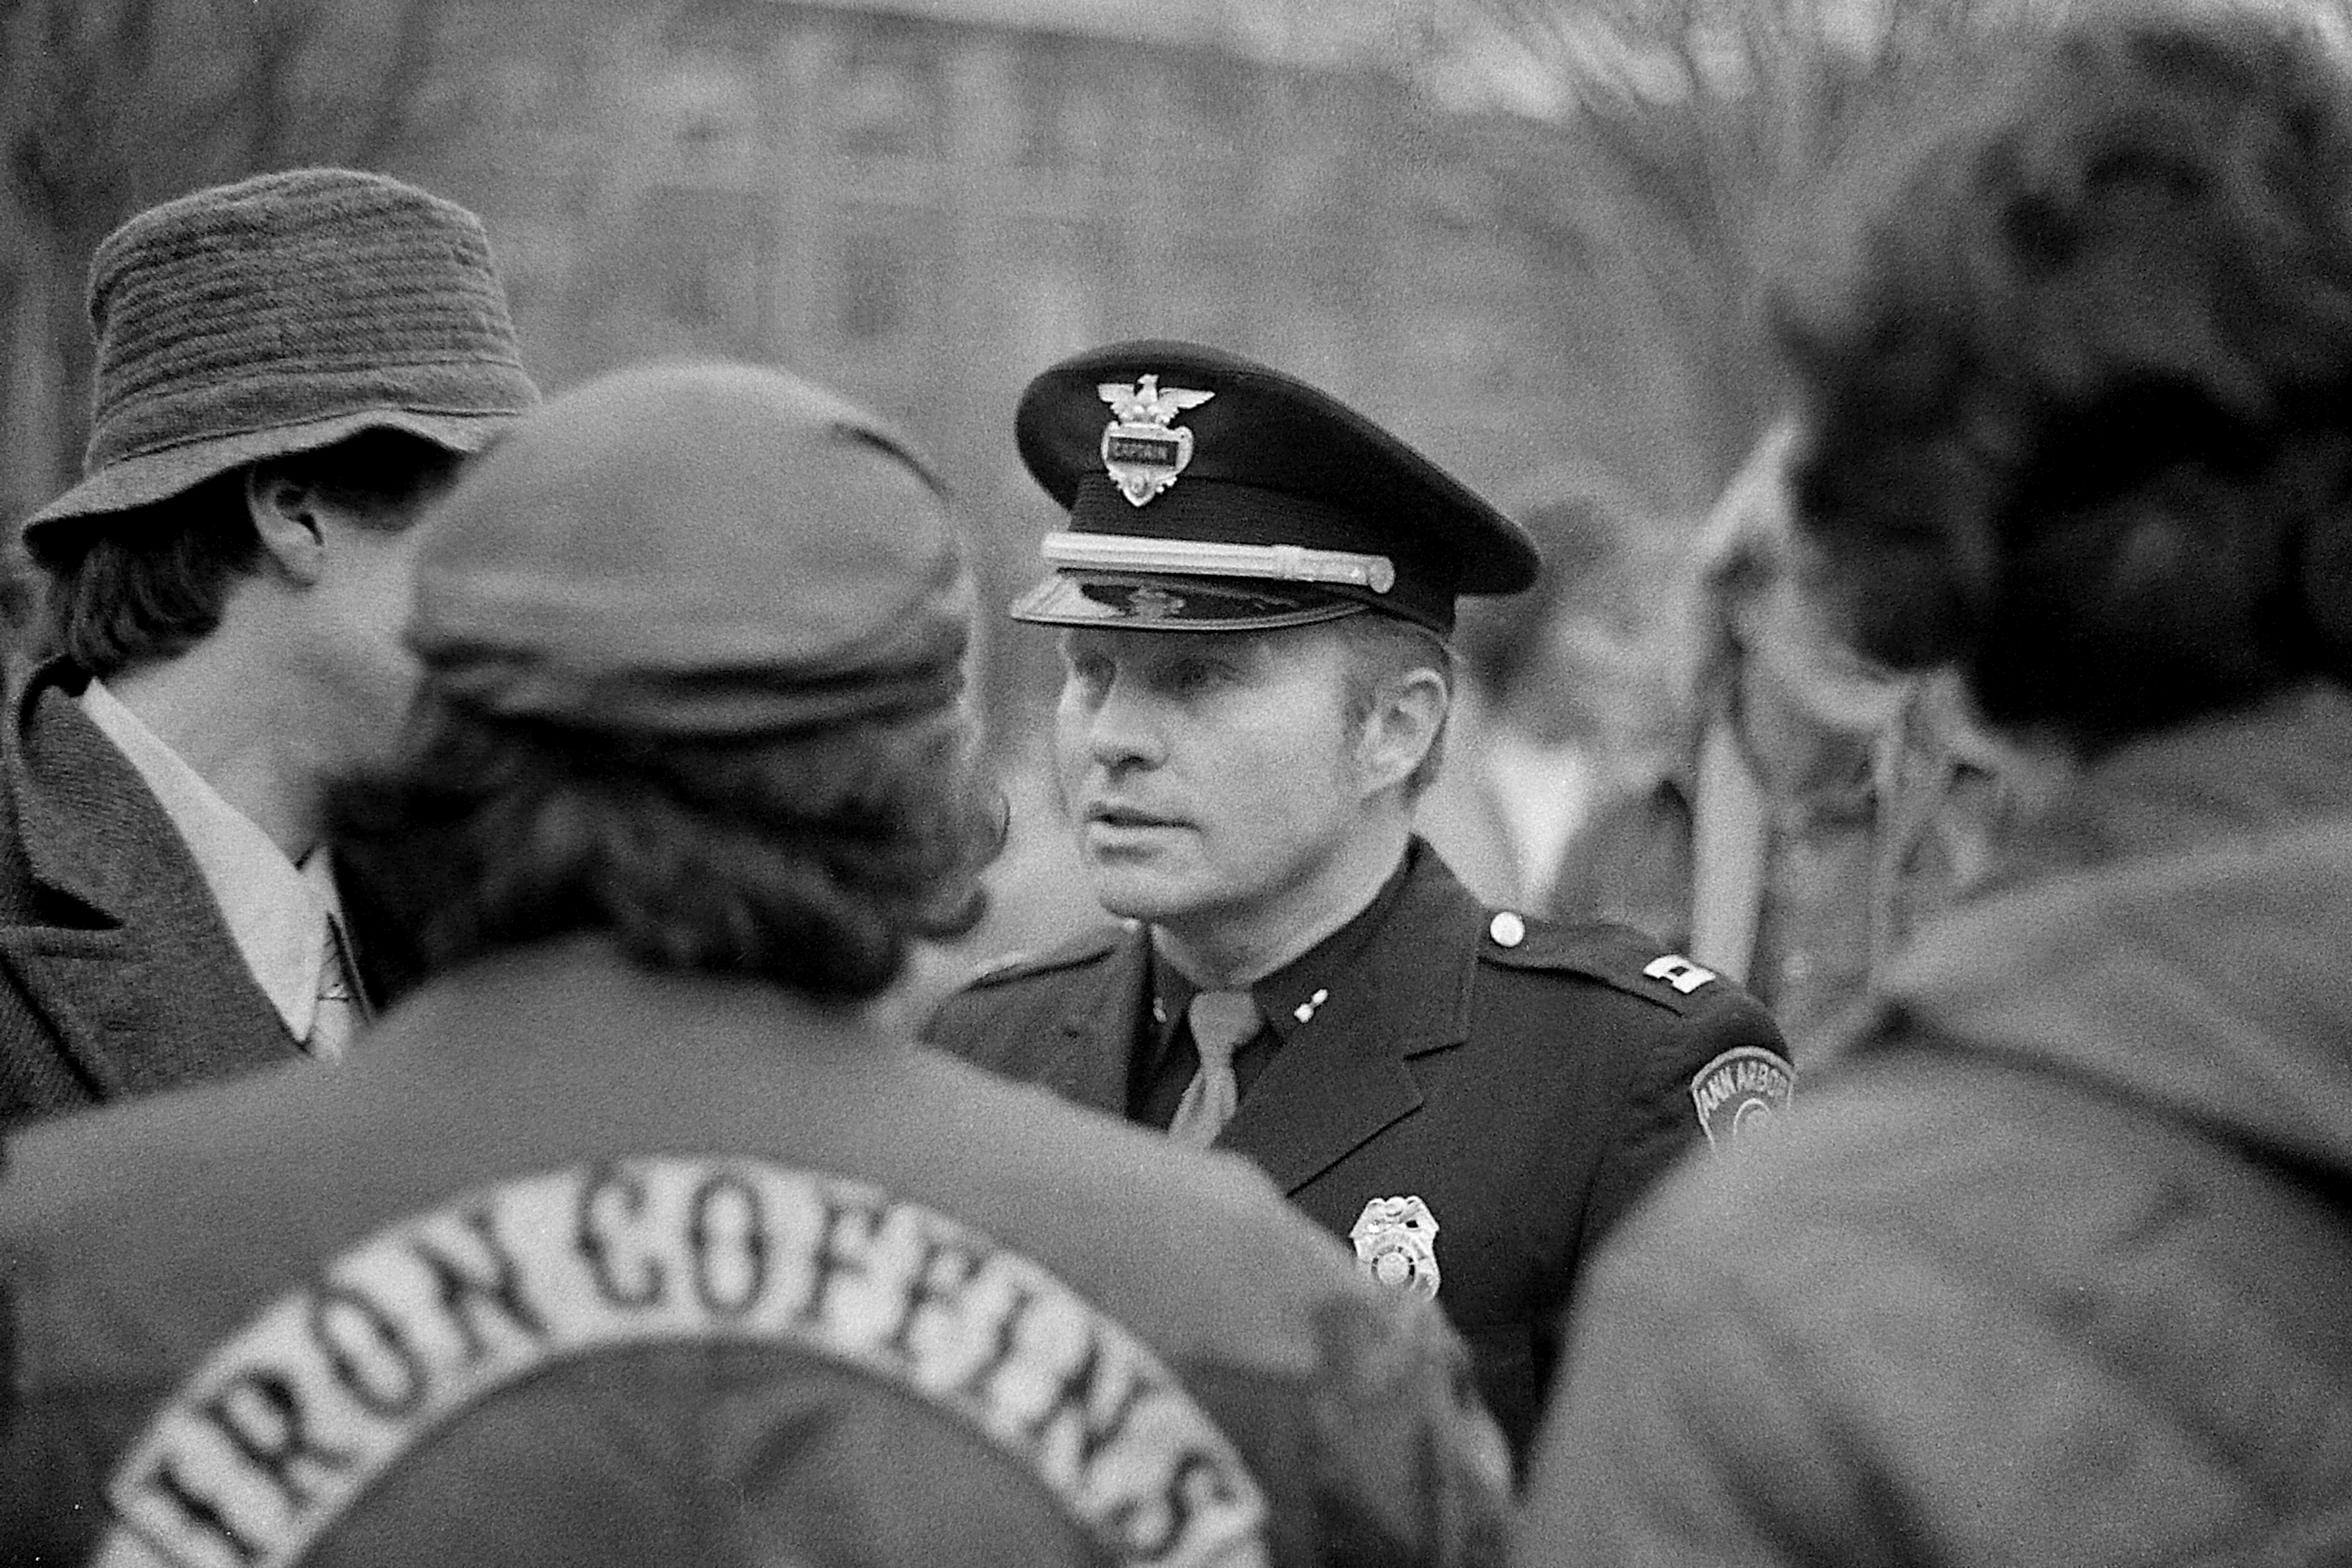 Police At Hash Bash, 1978 image